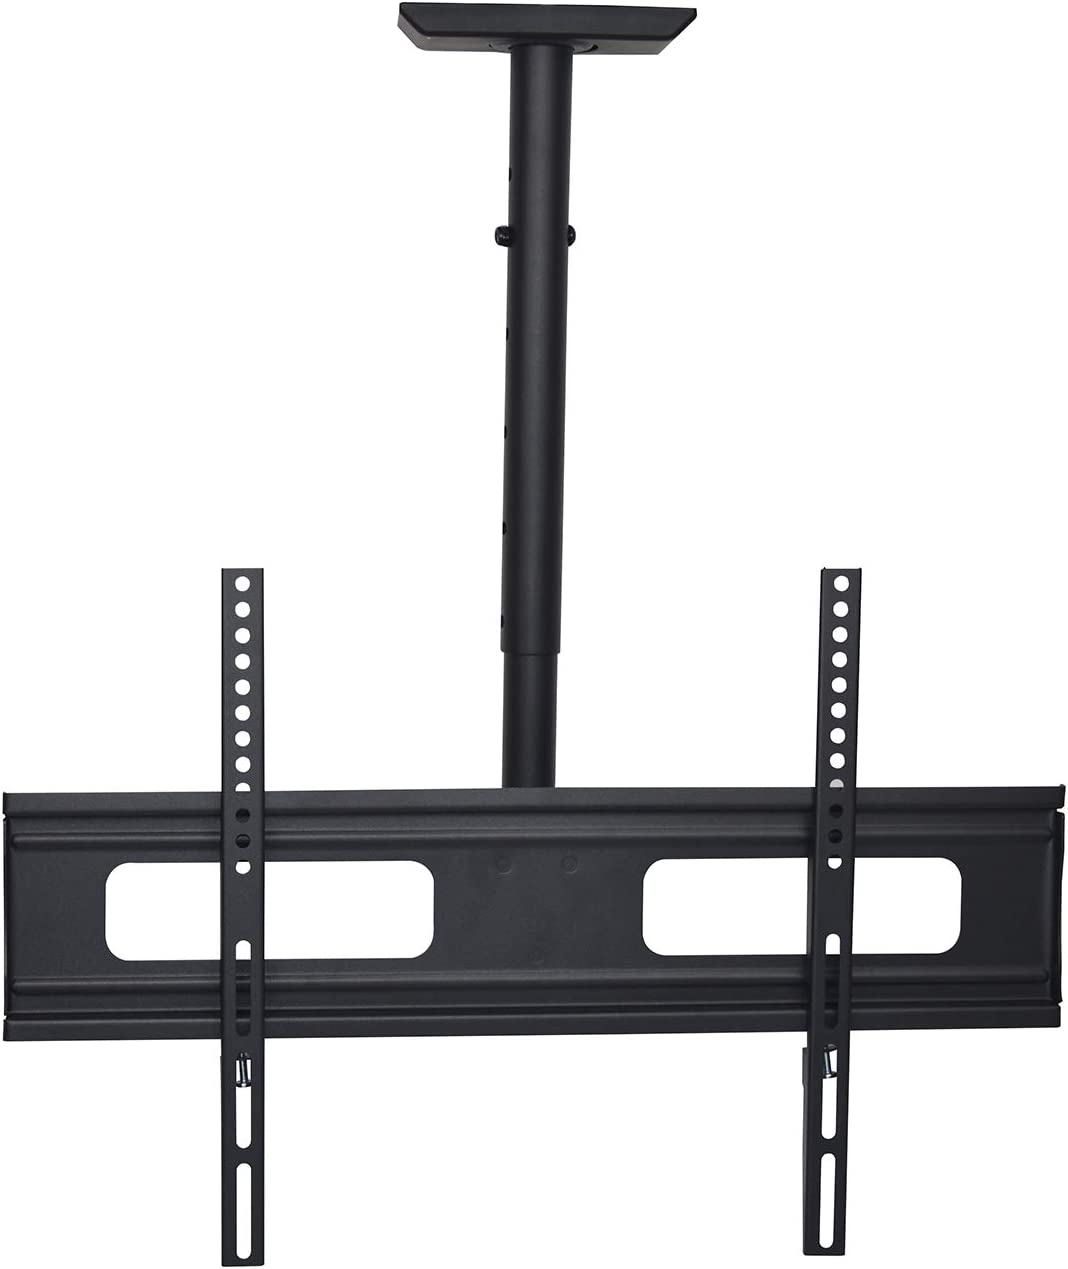 Universal Solid Ceiling tv Mount, tilt and rotatable,fit 37inch to 75inch TV LCD,LED,OLED,Plasma TV . Bubble Level Included